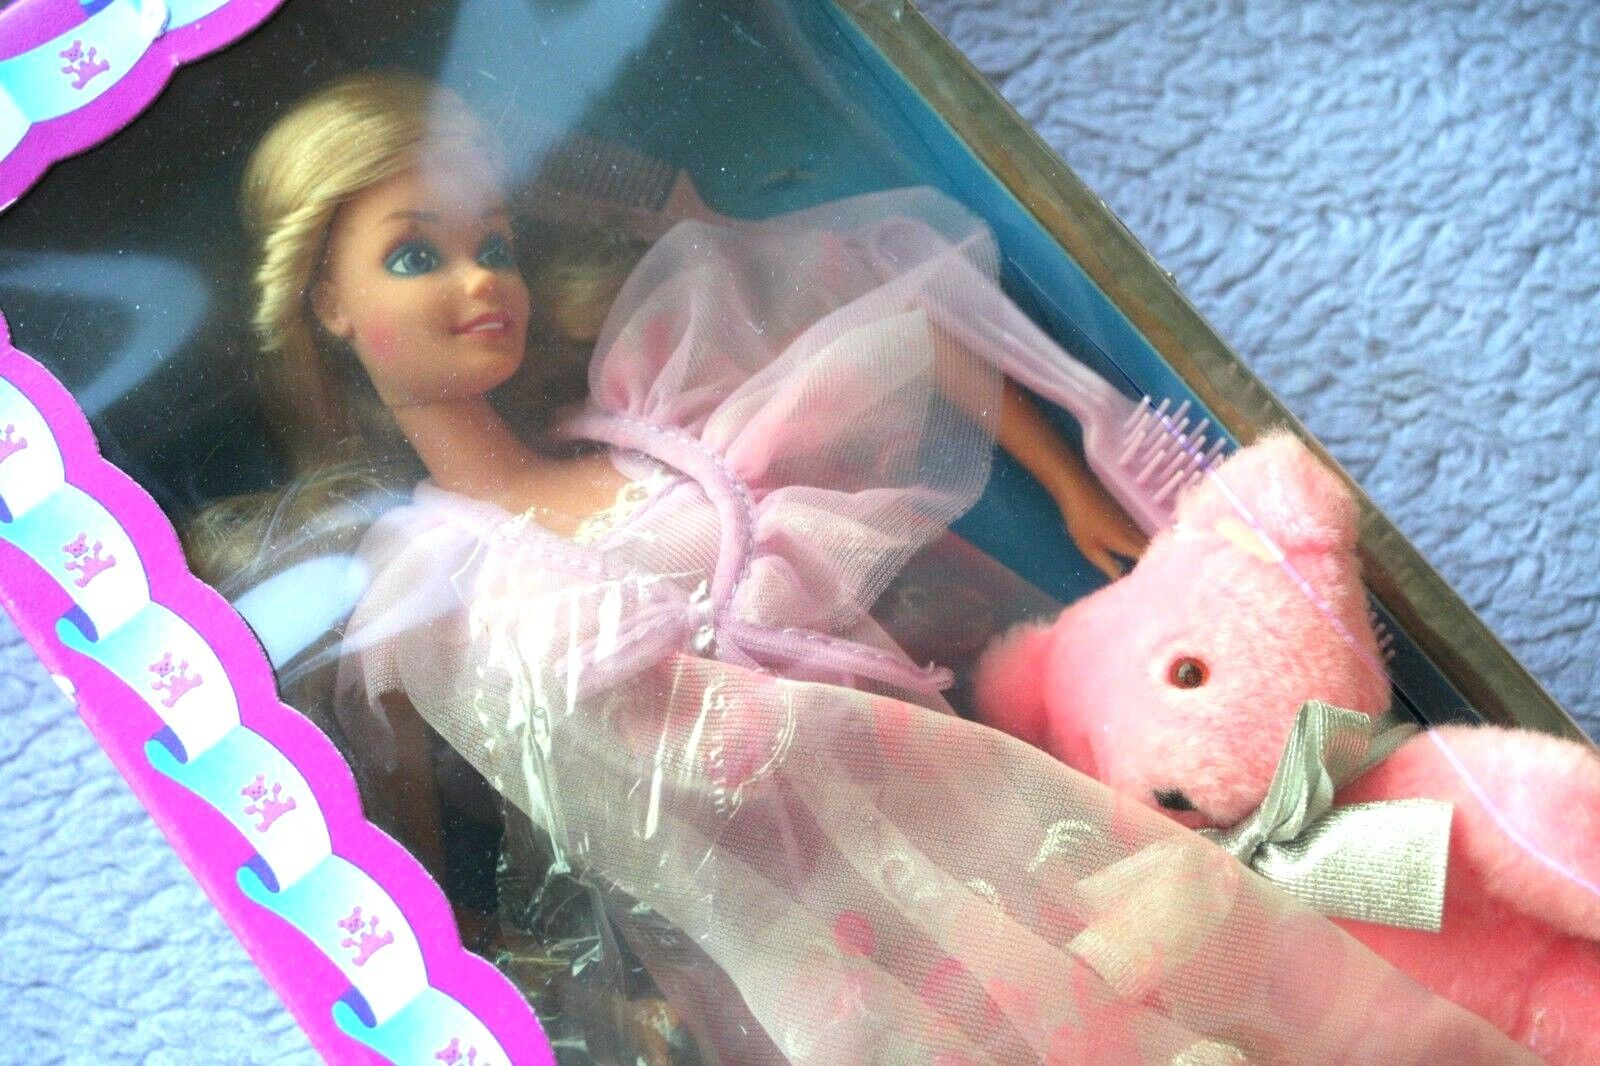 VTG BARBIE DOLL  DREAMTIME with HER BEAR B.B.(1984 ). UNPLAYED, COMPLETE IN BOX